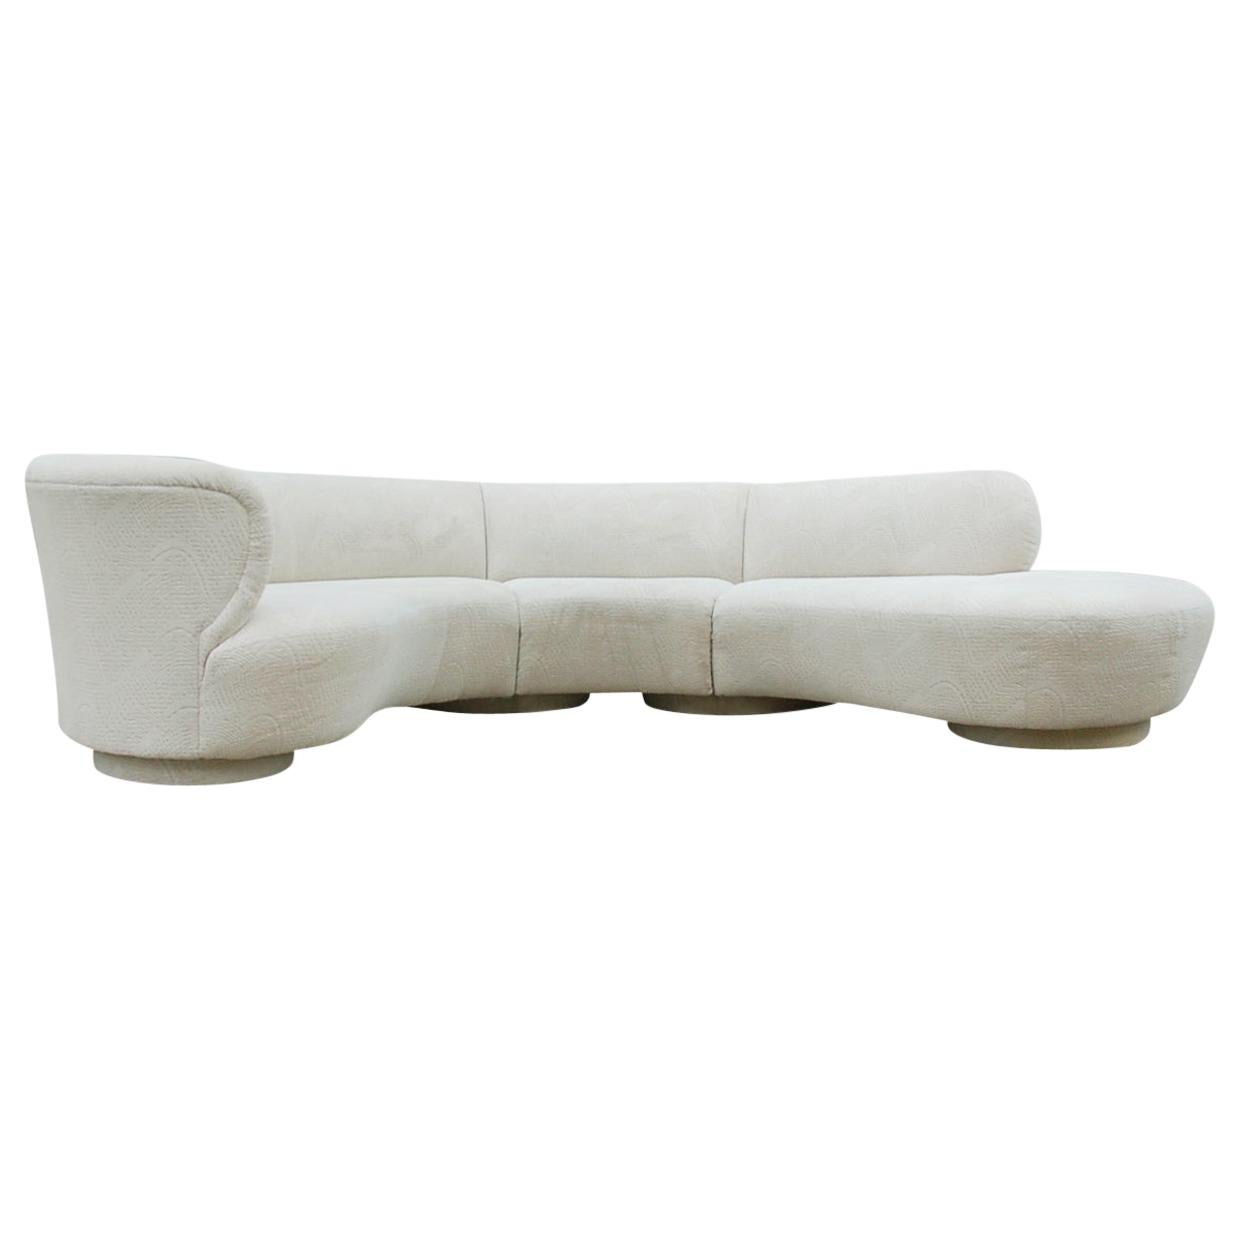 Mid-Century Modern Curved Serpentine Cloud Sectional Sofa